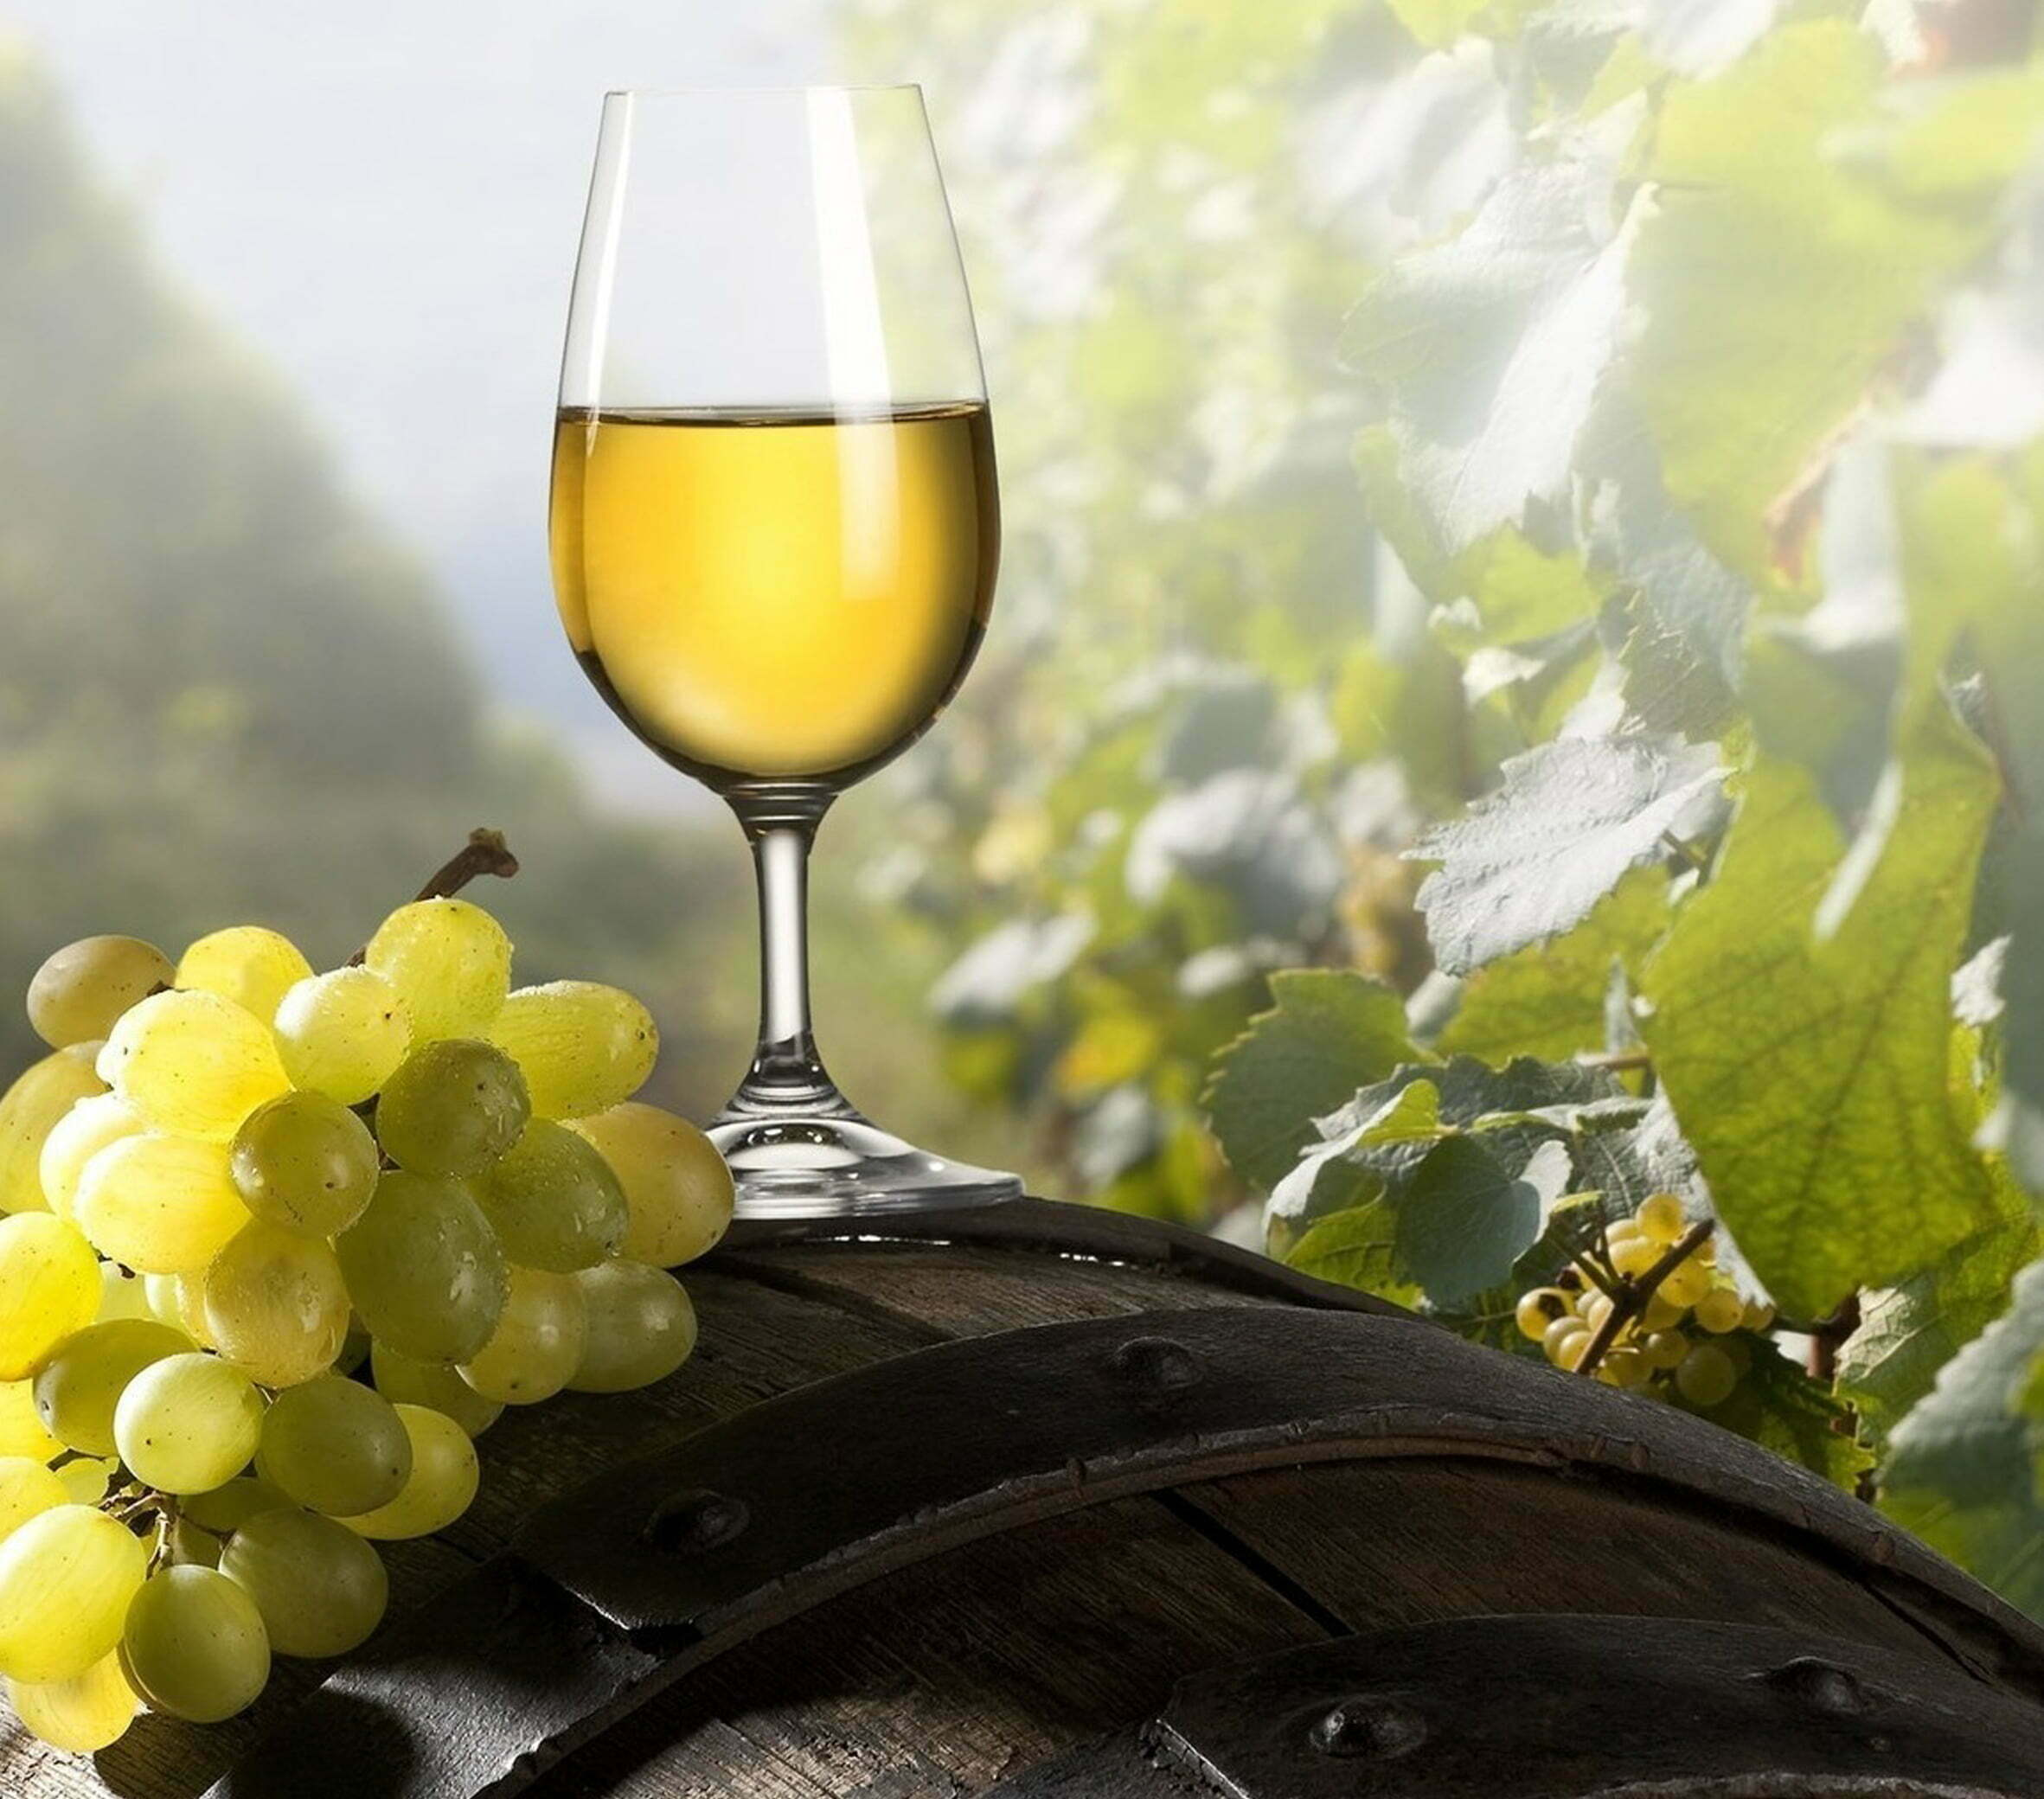 Good blends in white wines